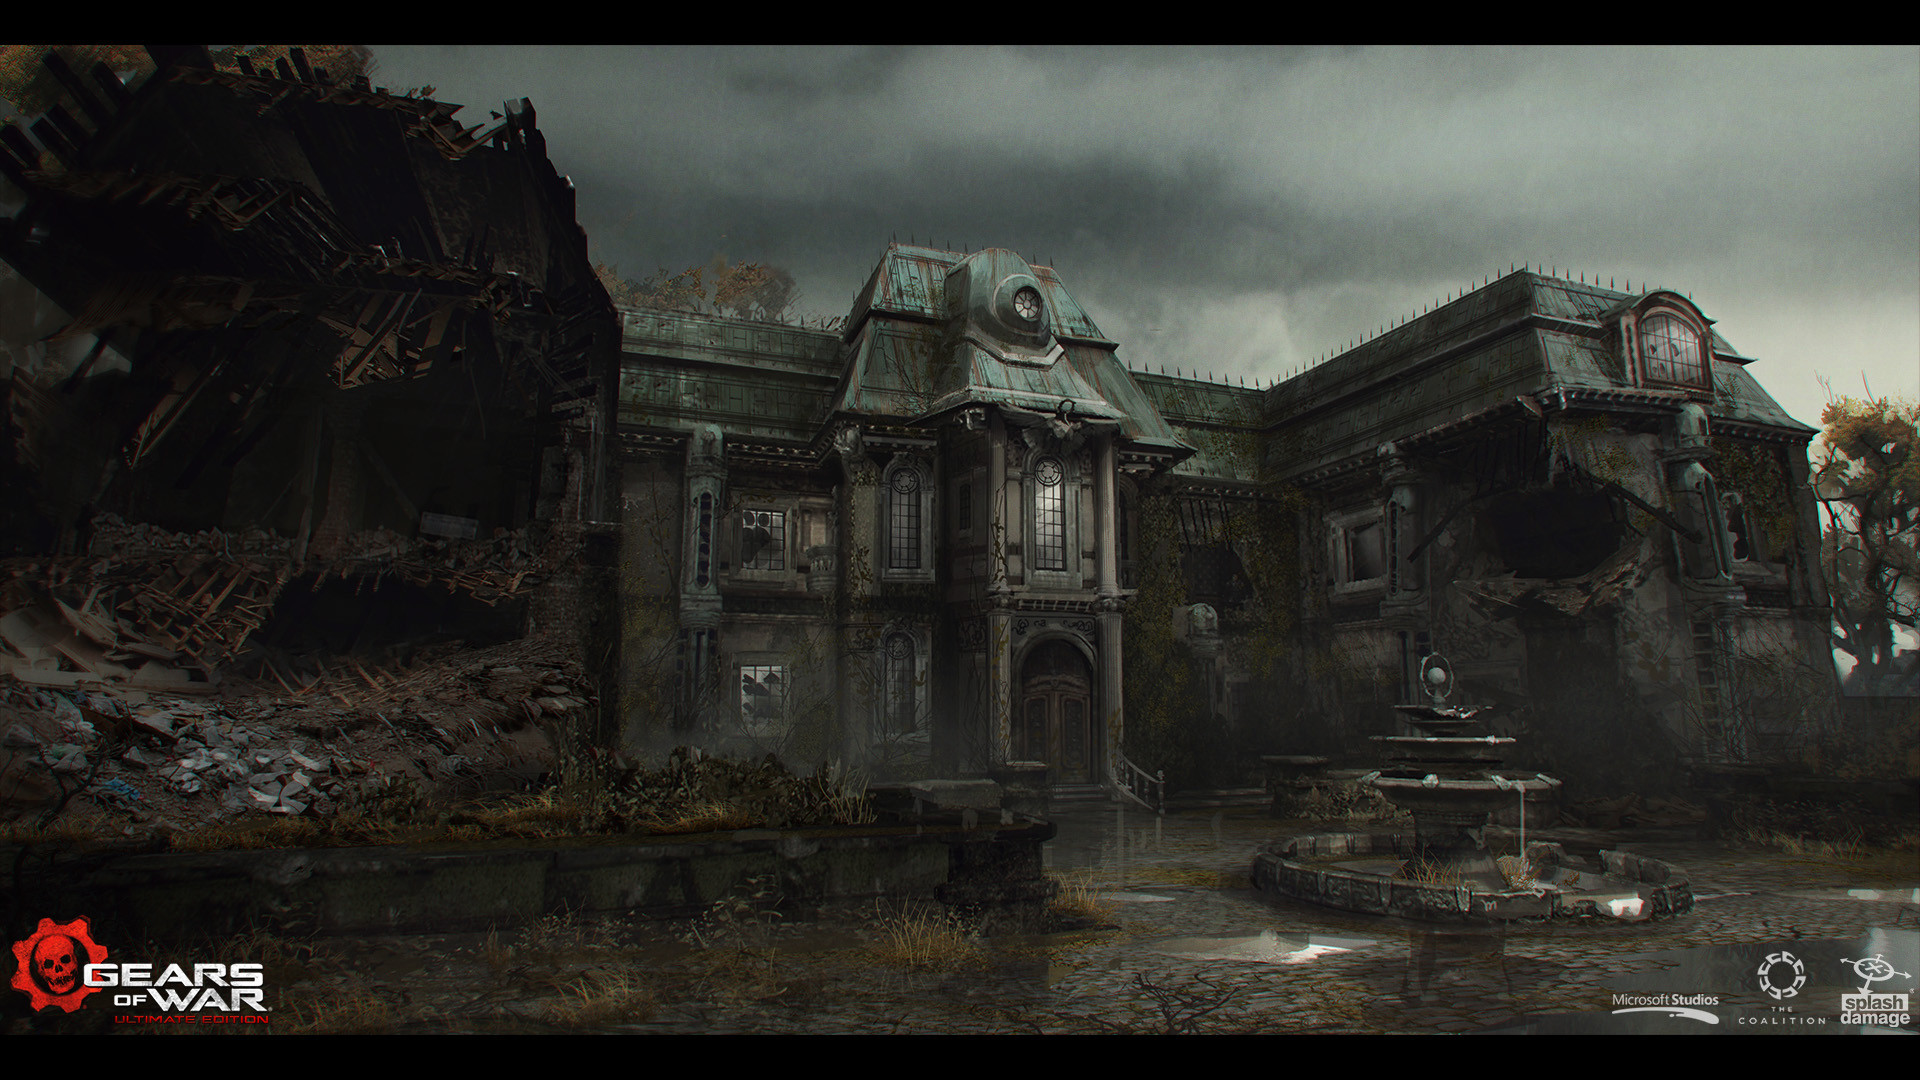 Gears of War - Concept Art - Adam Baines